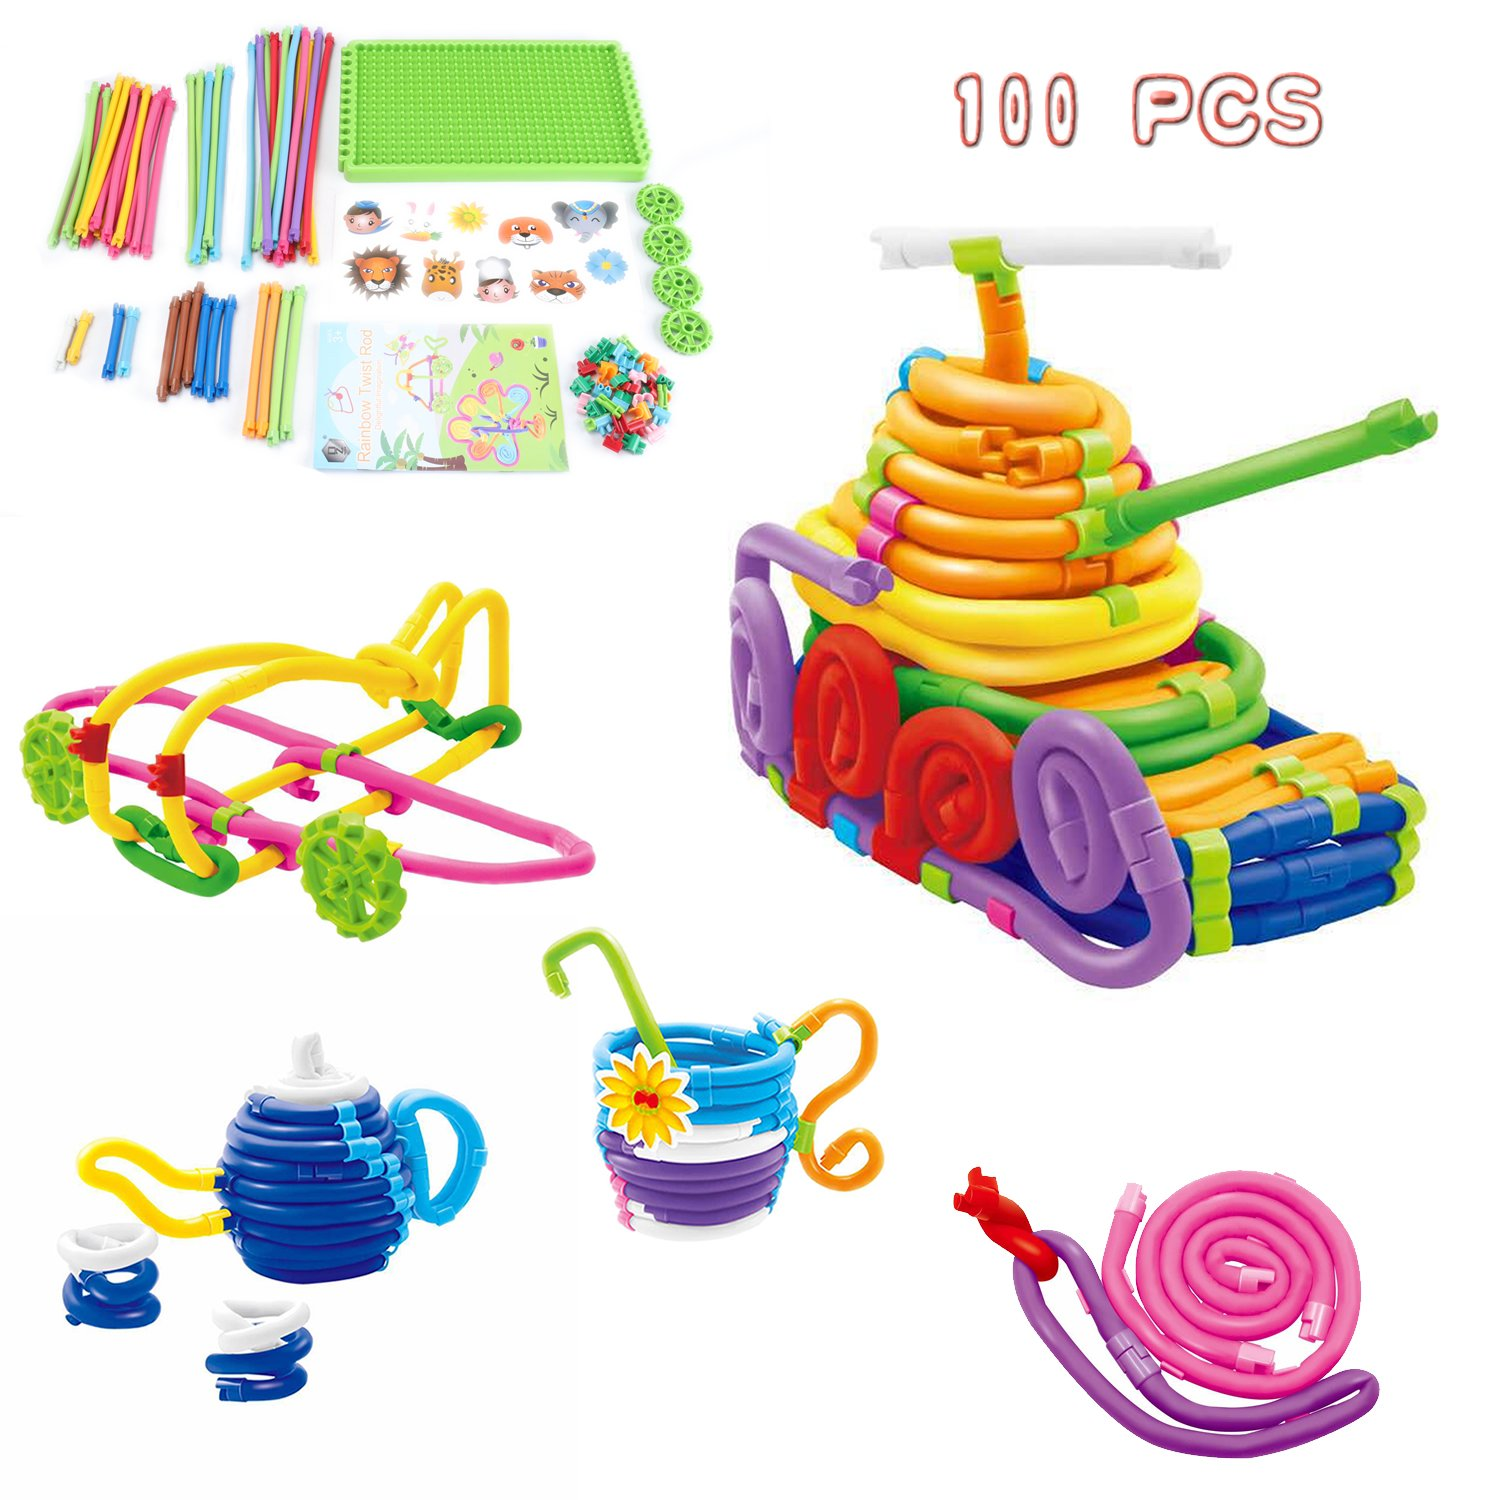 Jujuism Flexible Sticks Folding Rainbow Twist Rod Soft Winding Toy Colorful Bending Stackable Blocks 100PCS Gift for Girls Boys